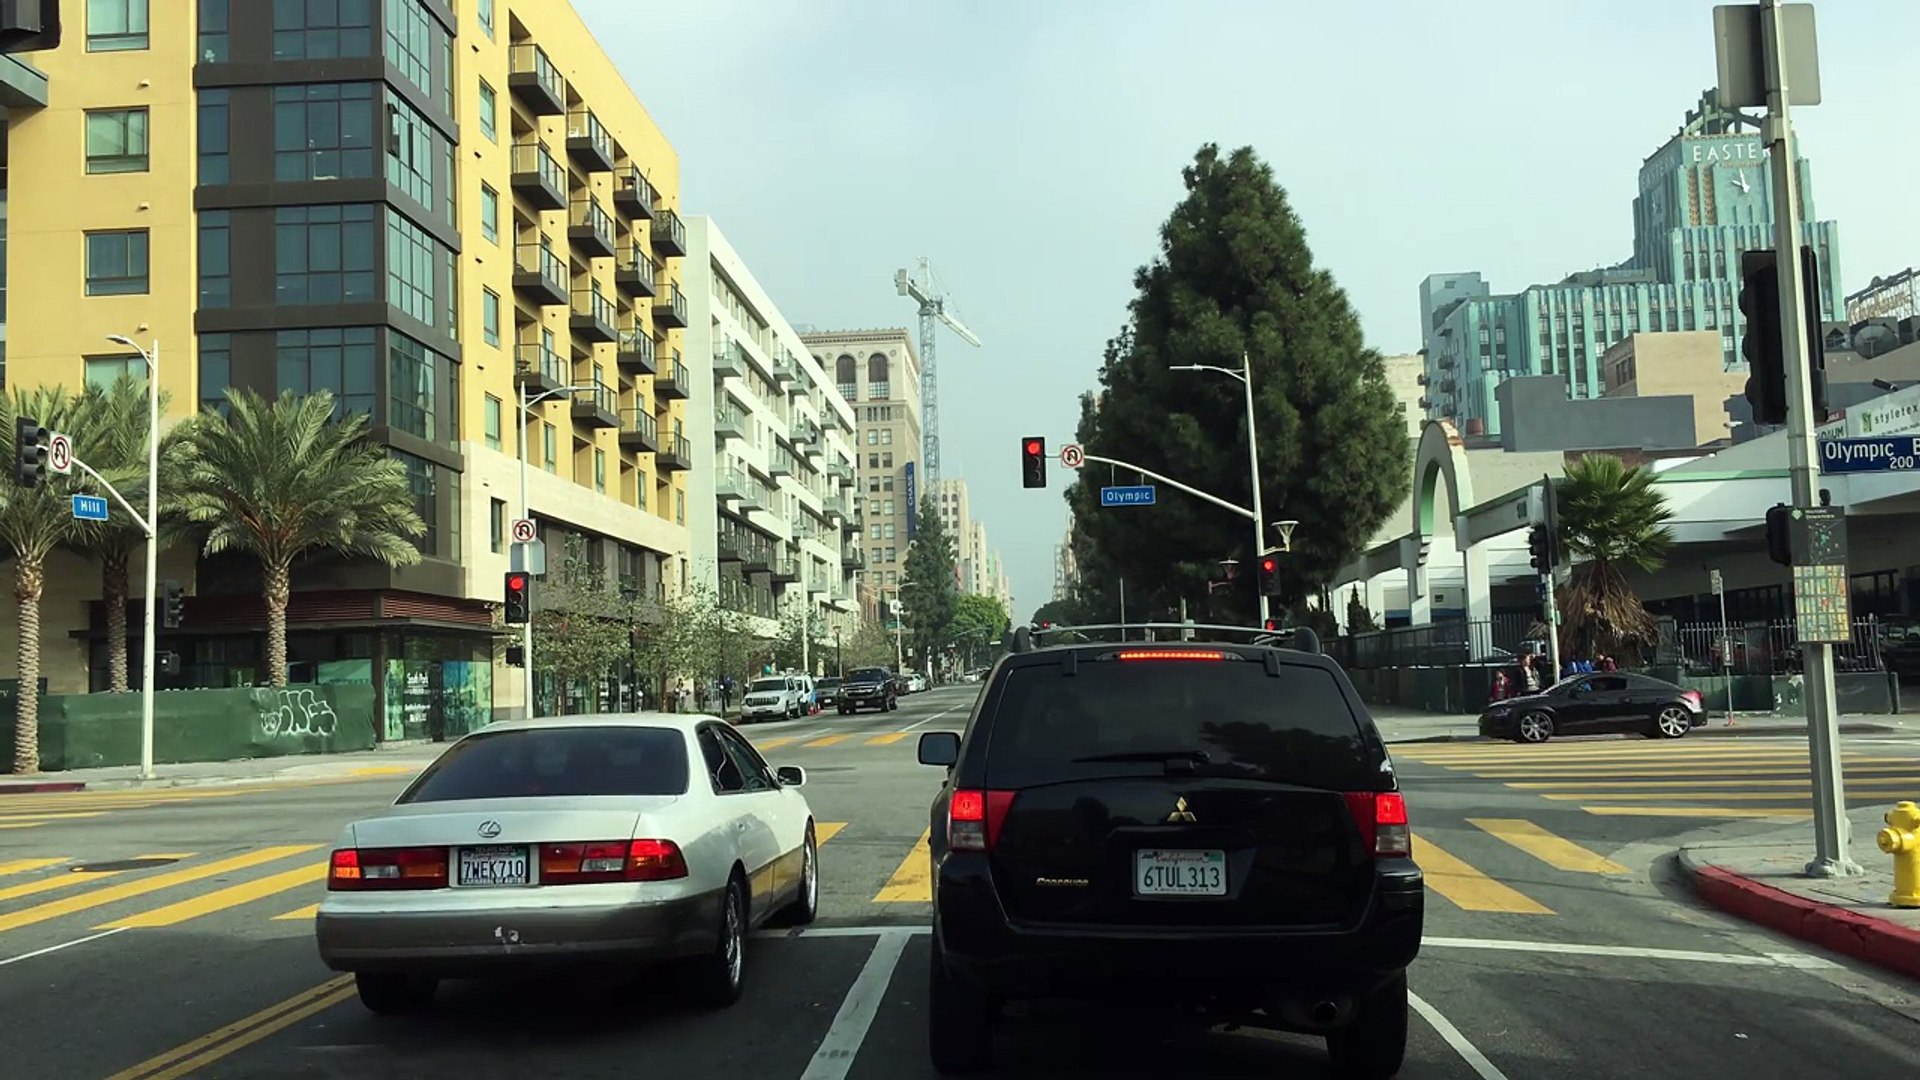 Driving Downtown - LAs Jewelry District - Los Angeles California USA